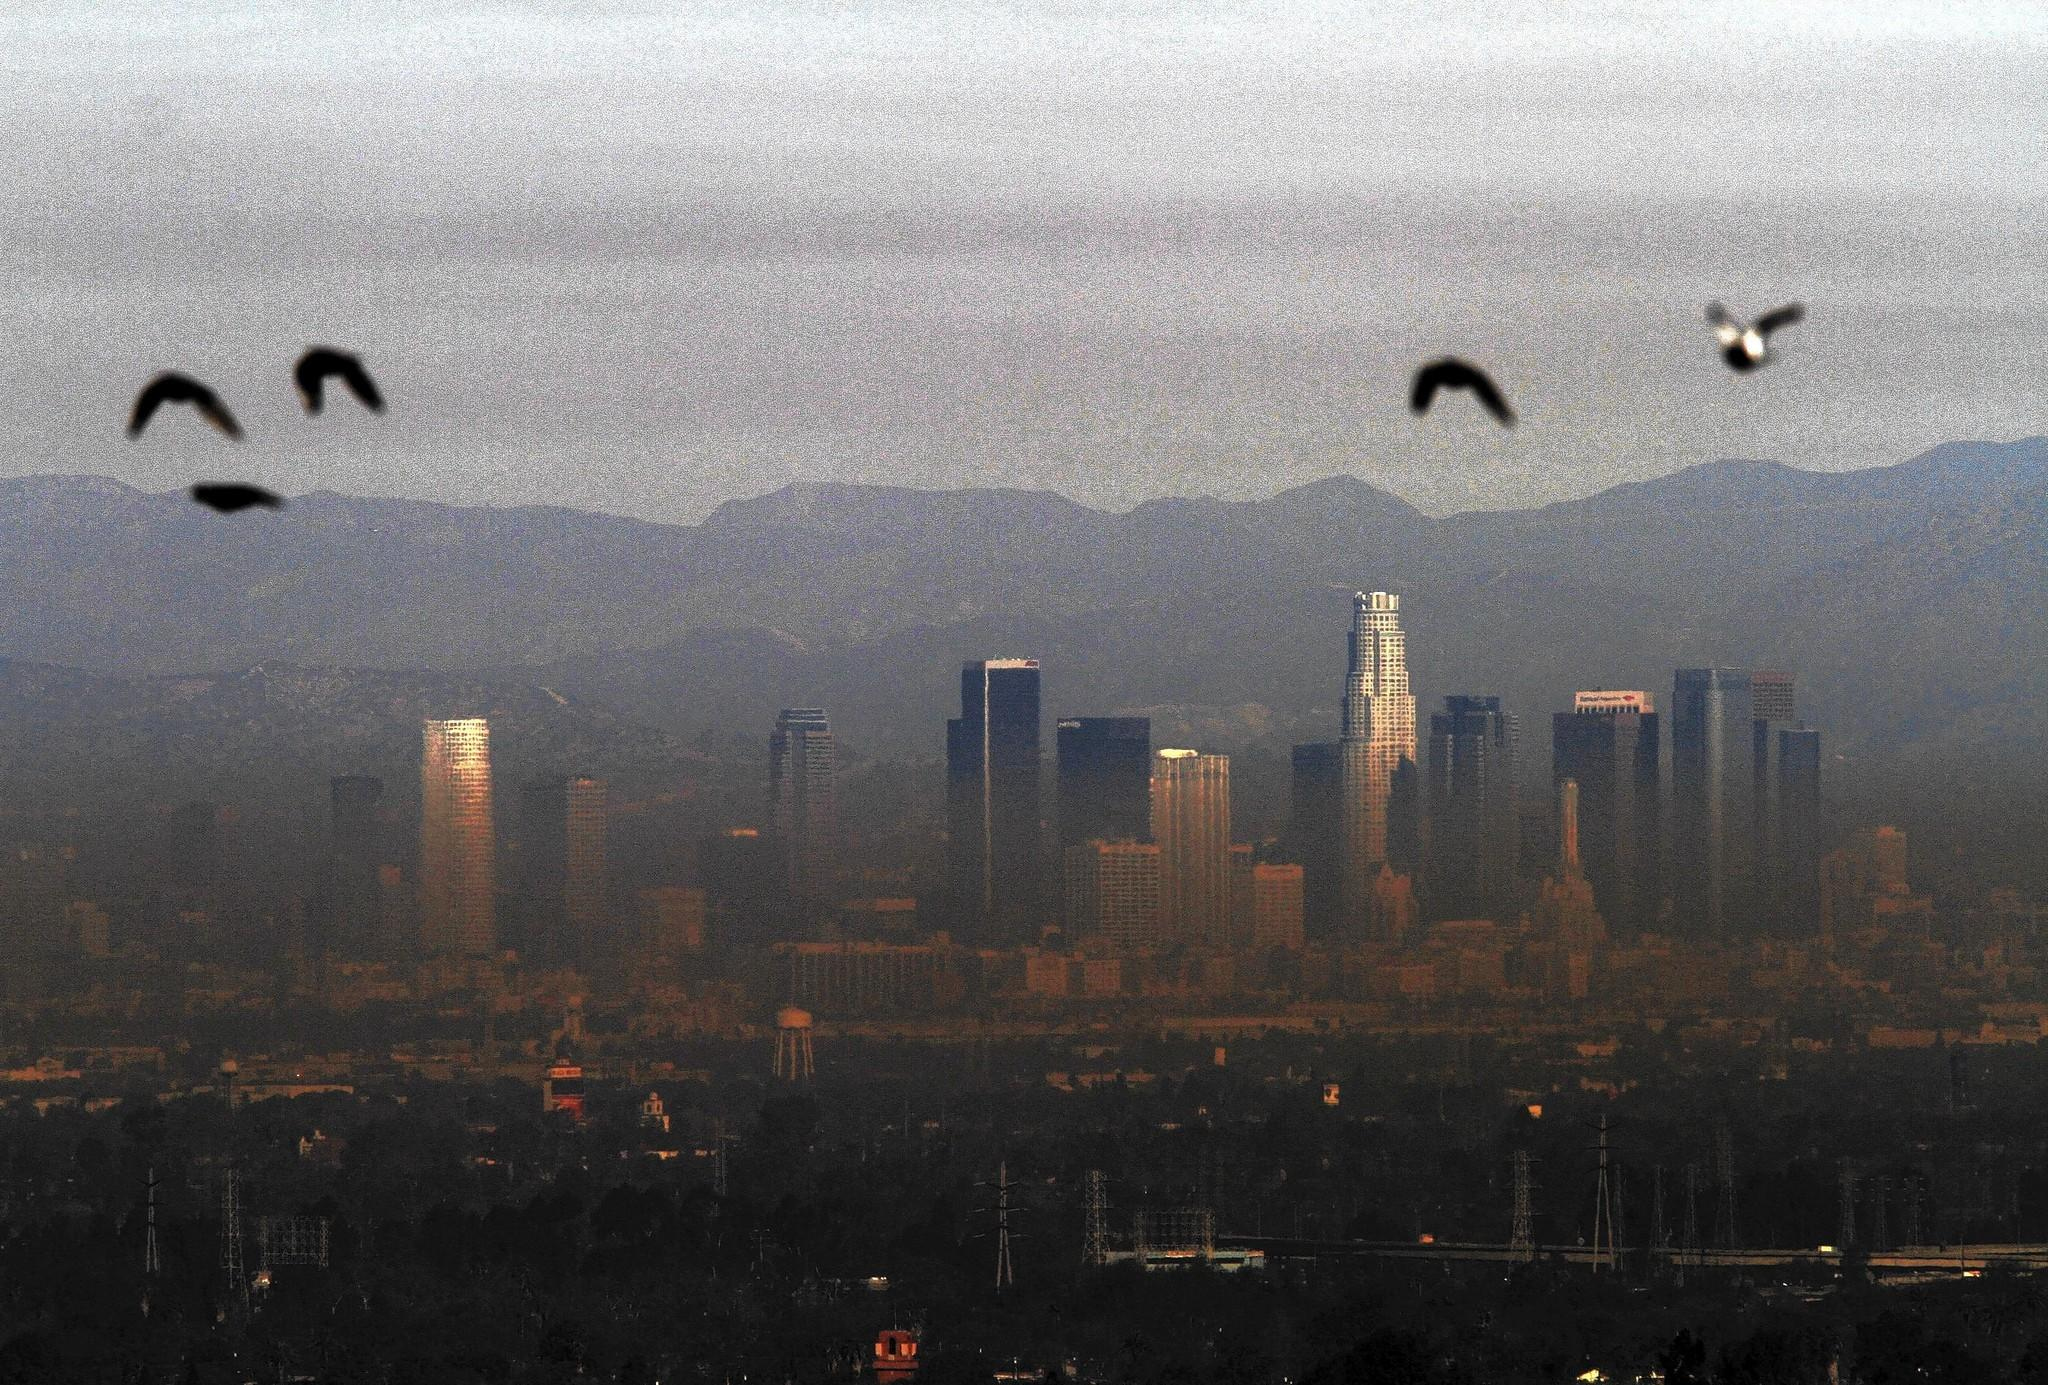 Exceptional dryness brings the hazy days of winter latimes a band of sooty brown haze cloaks downtown los angeles in this view from hilltop park sciox Gallery